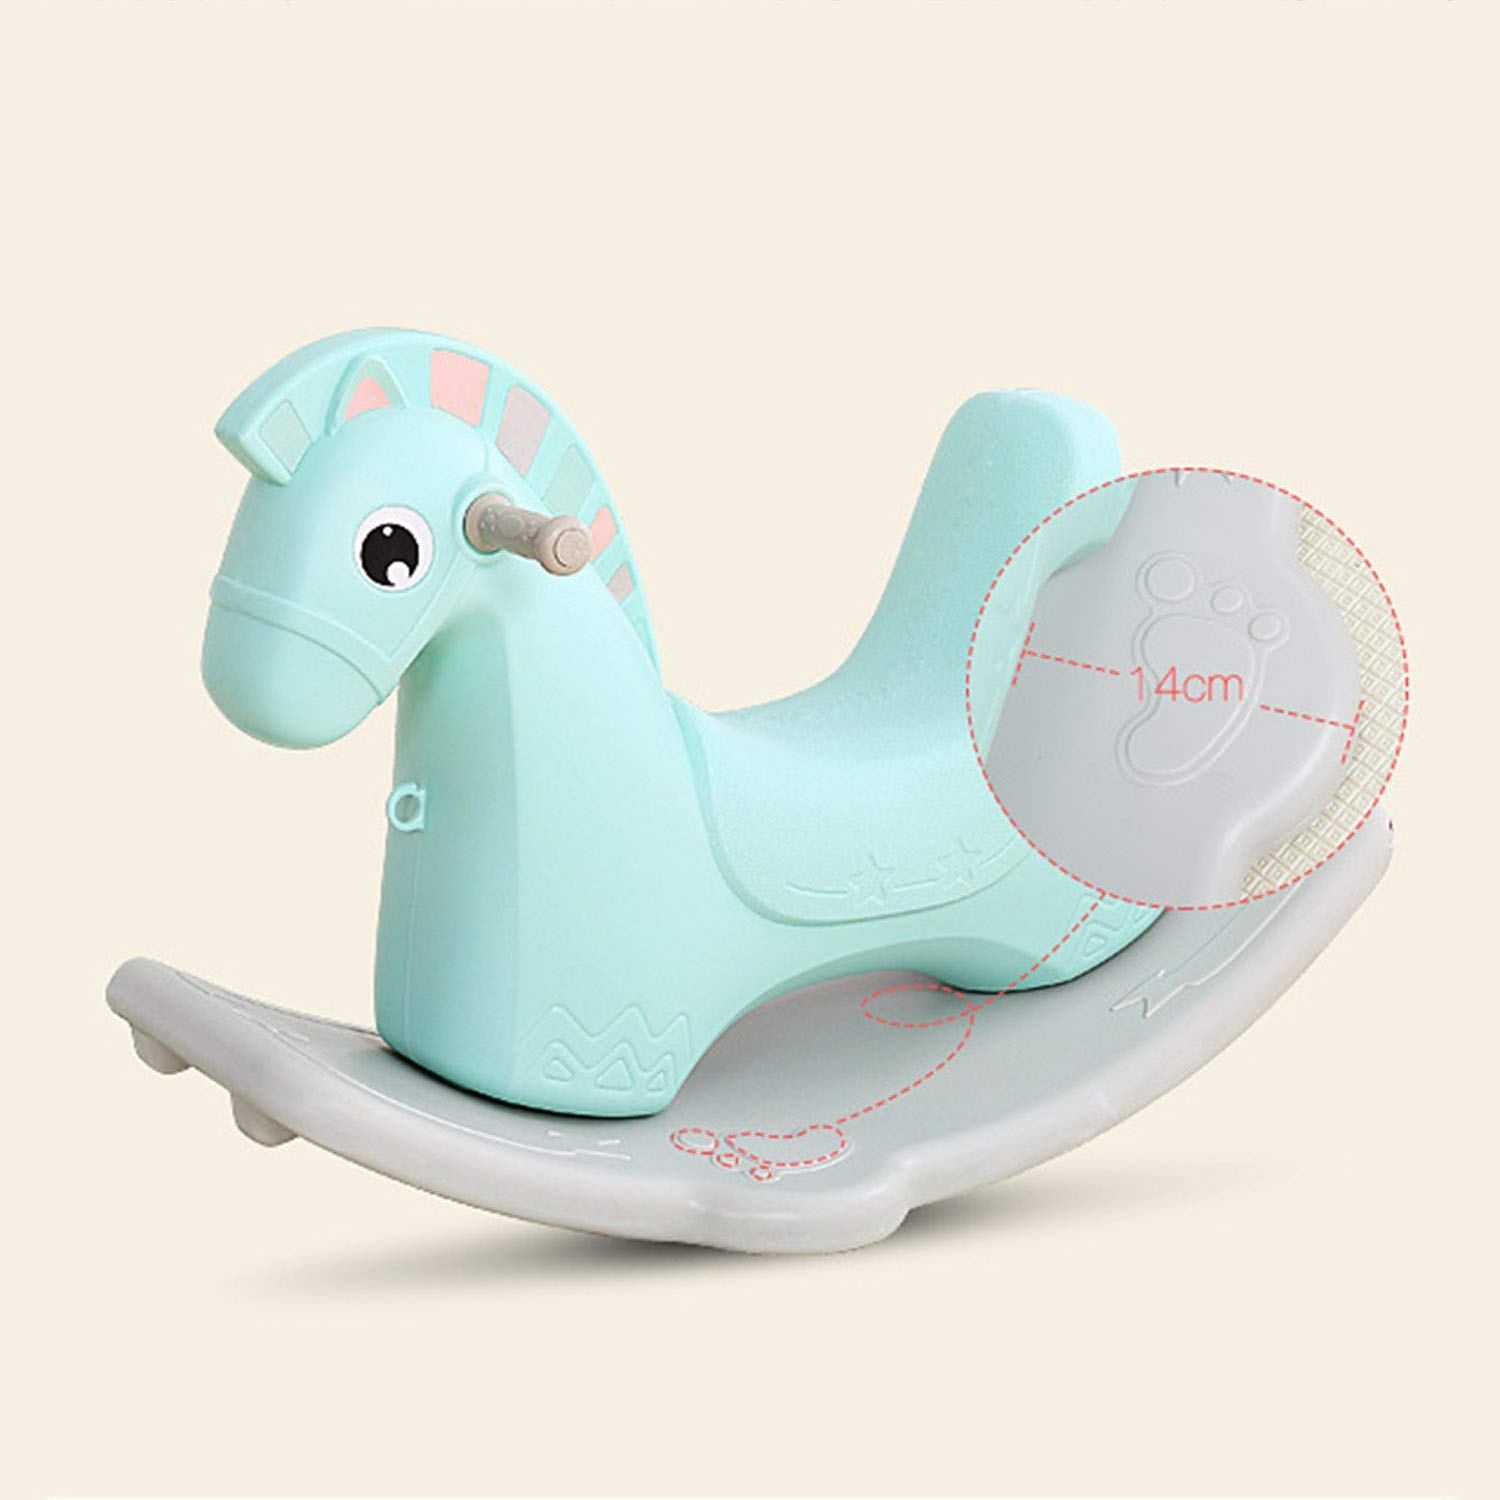 AIBAB Baby Rocking Horse Tumbler Baby Comfort Chair Thick Plastic Multifunction Nursery Boy Girl Toy Gift by AIBAB (Image #4)